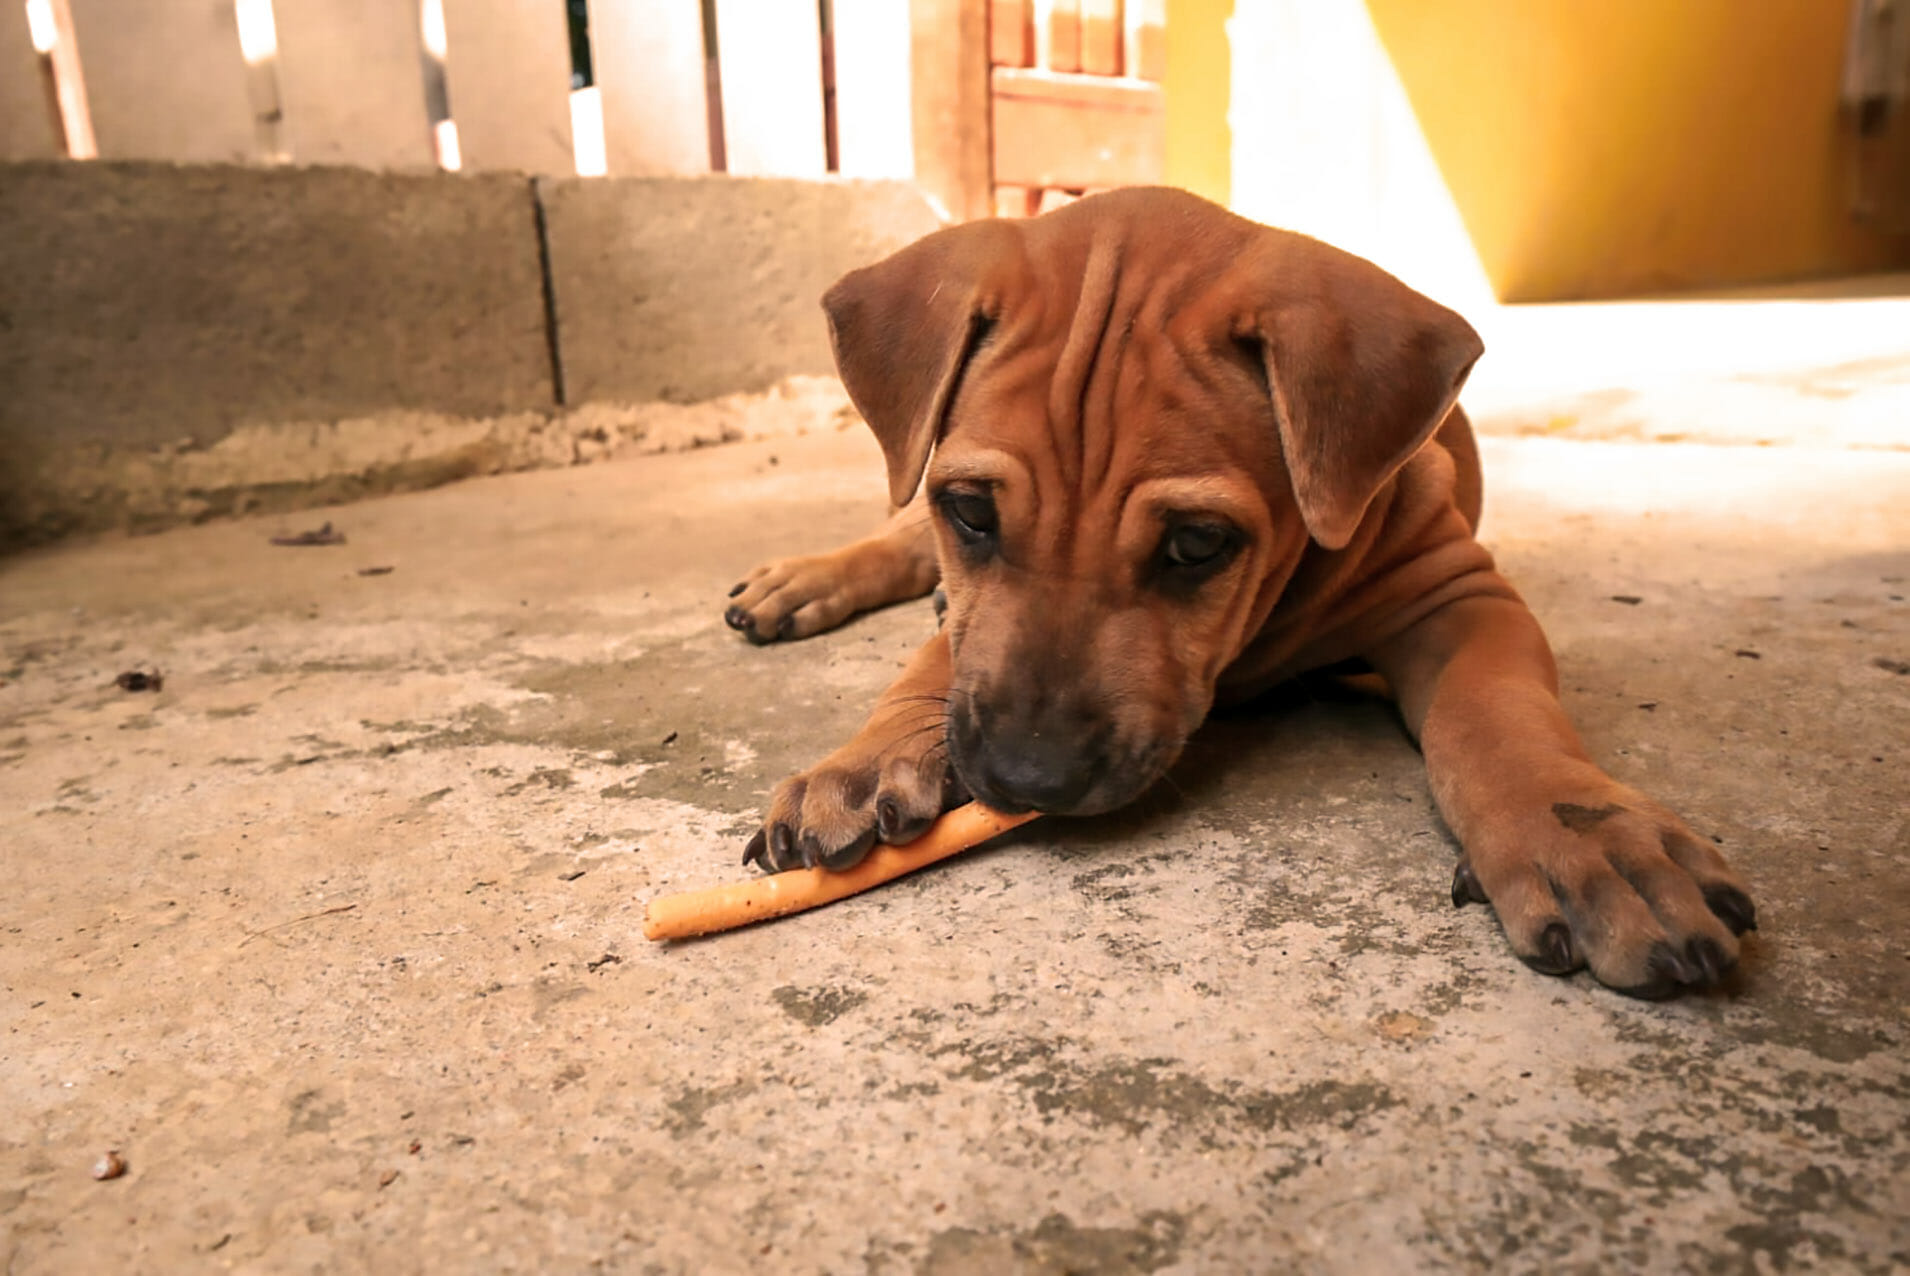 schöne Bilder Welpe | Happy Dogs Koh Chang- animal welfare and shelter care Thailand